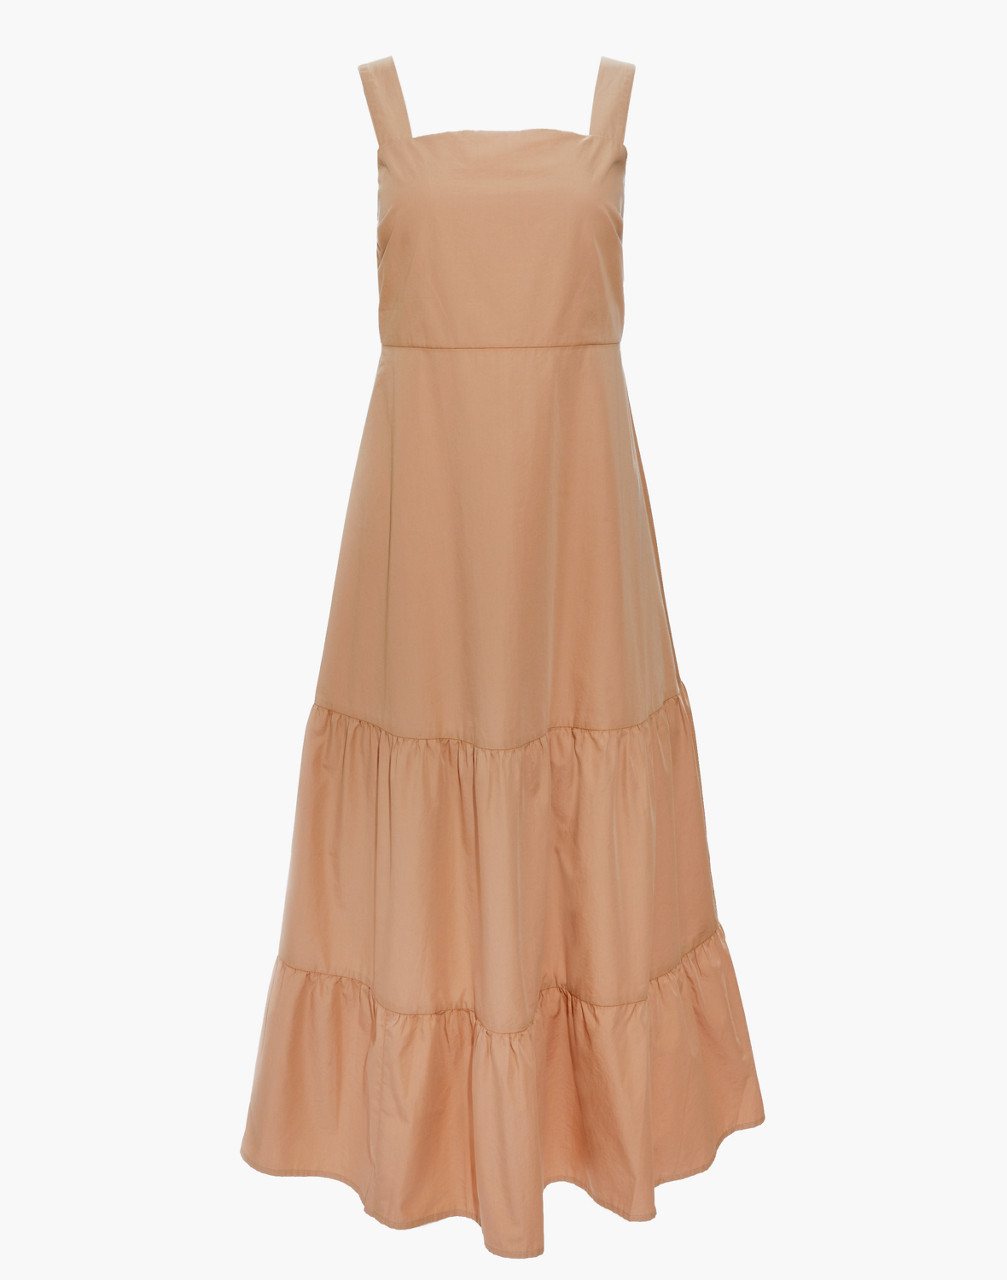 Cottagecore Clothing, Soft Aesthetic Button-Back Tiered Sundress $69.99 AT vintagedancer.com